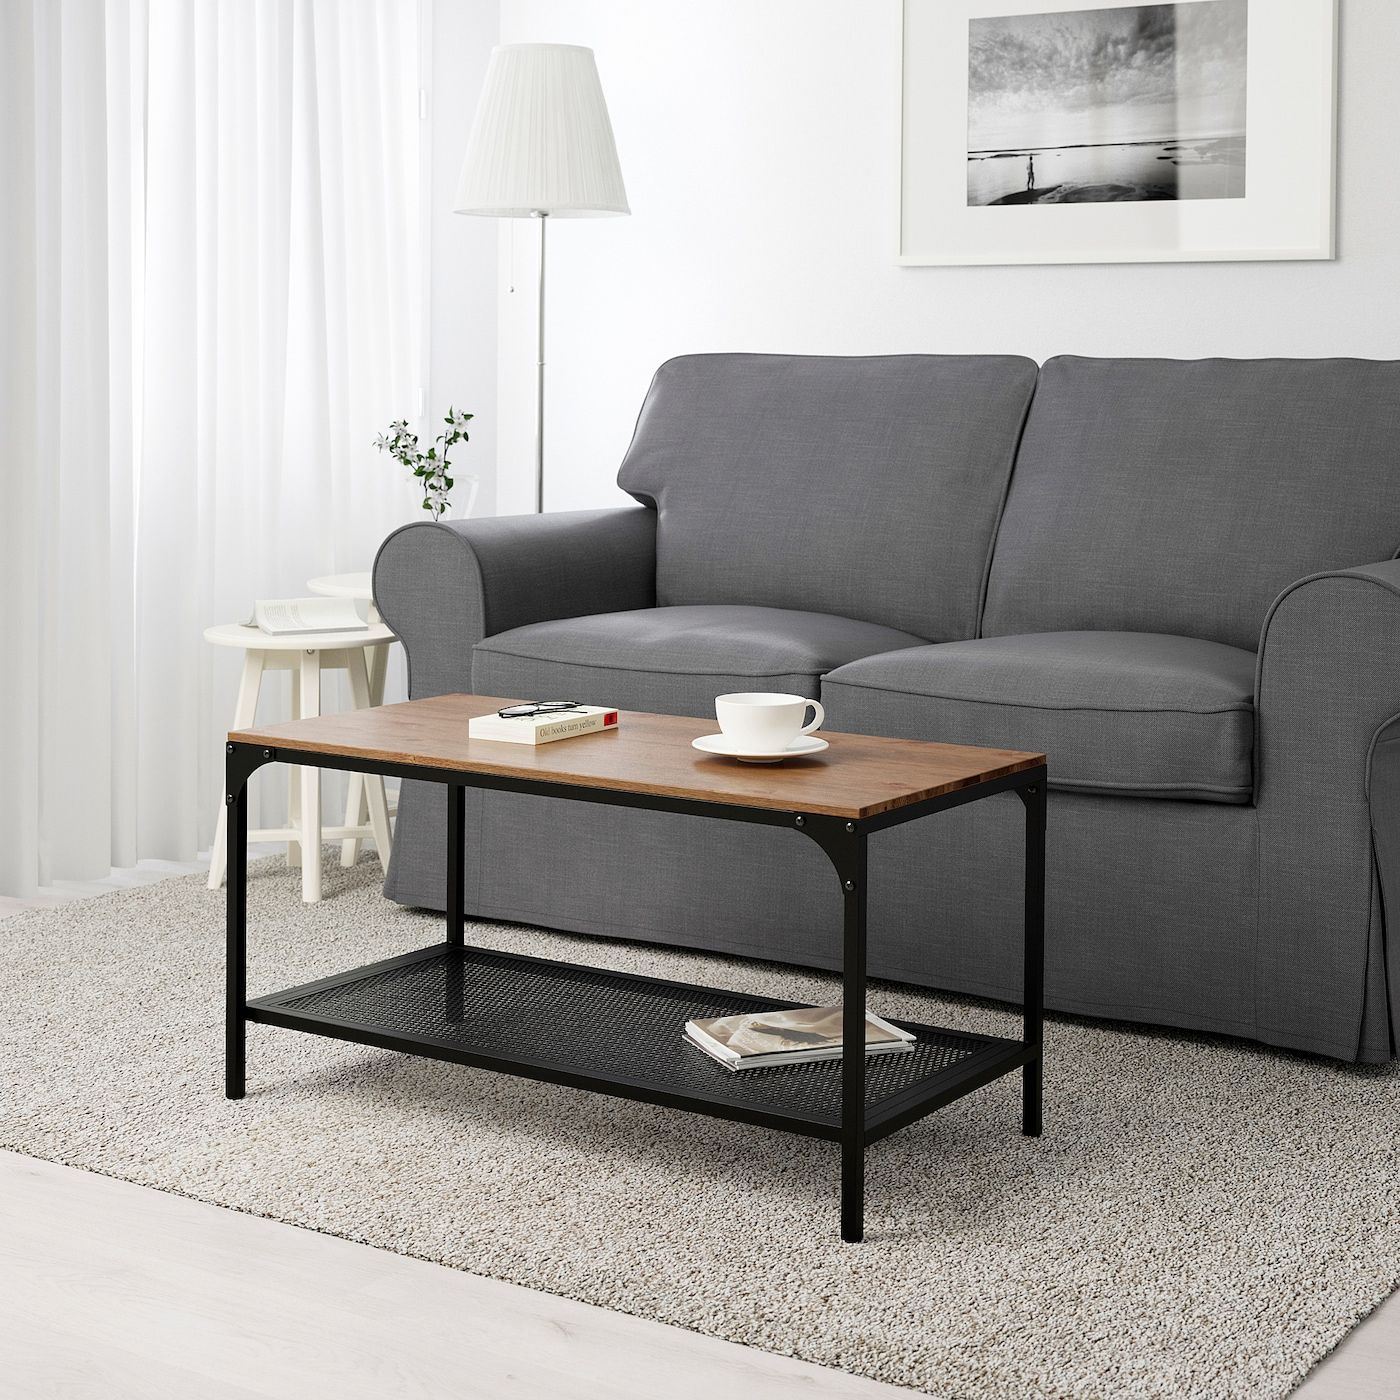 Granboda Nest Of Tables Set Of 3 Ikea Nesting Tables Coffee Table Small Tables [ 1400 x 1400 Pixel ]